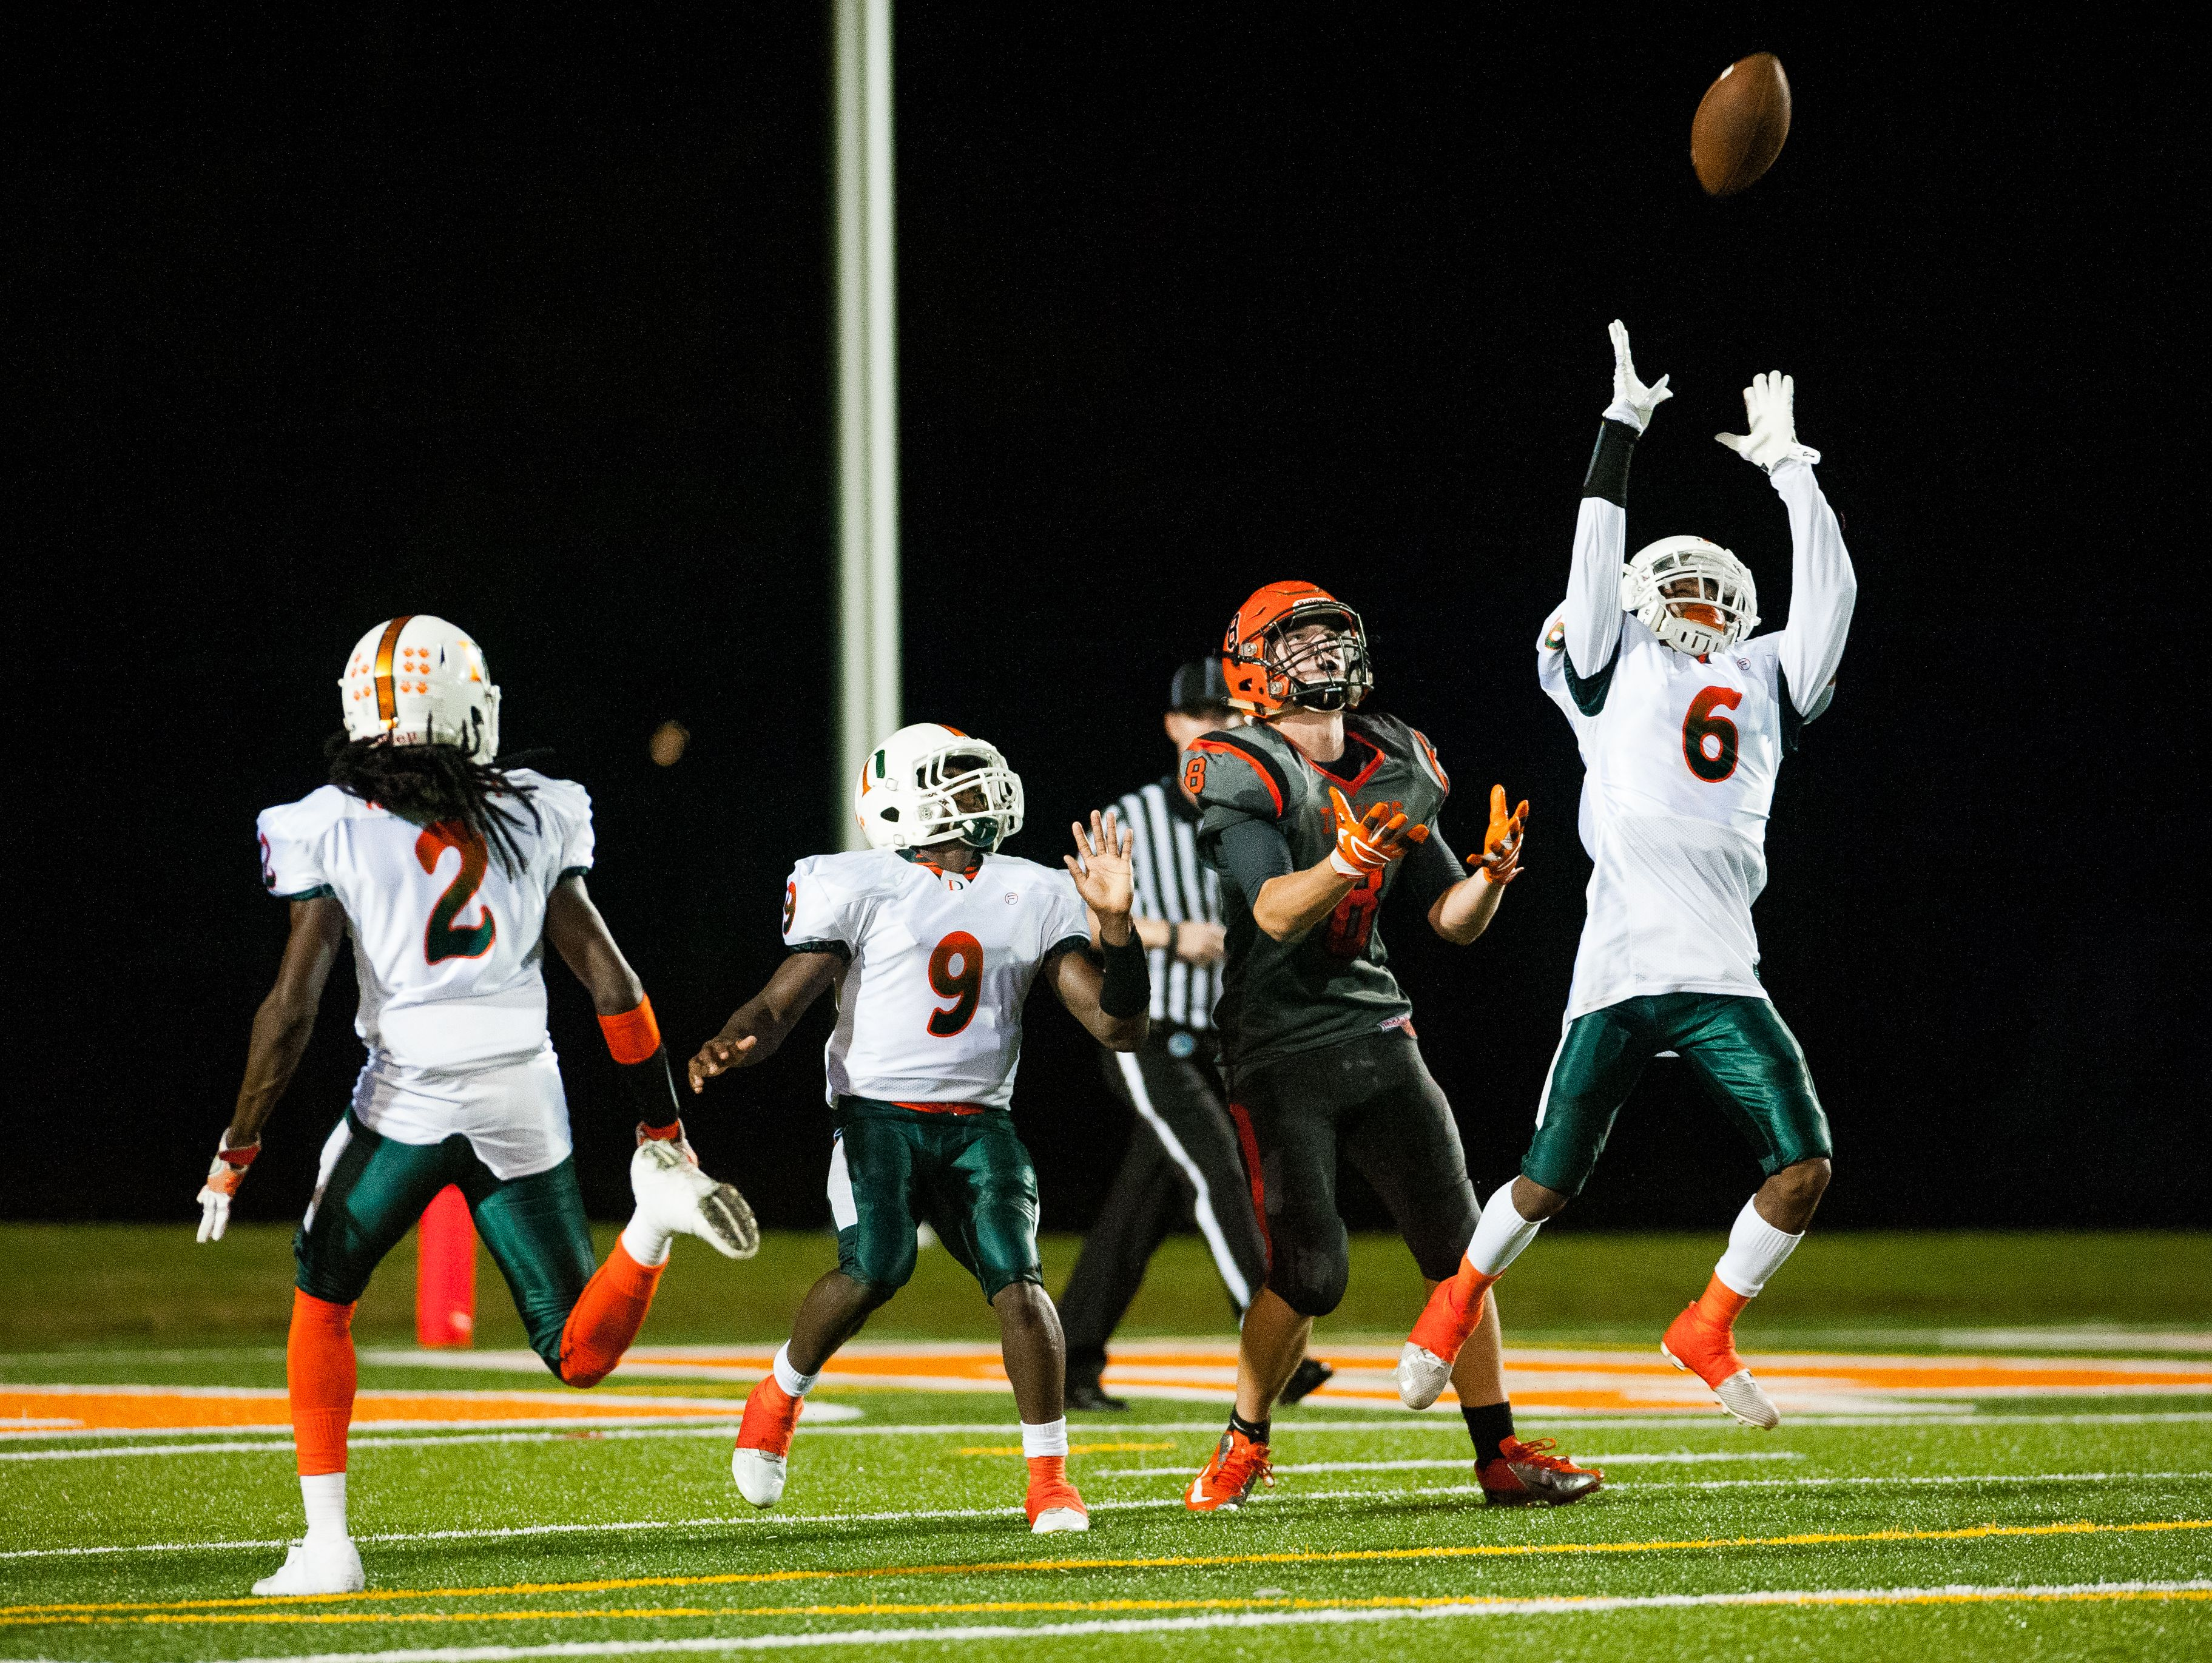 Dunbar fell to Lely last week and will look to get back on track in a rivalry game against South Fort Myers on Friday.